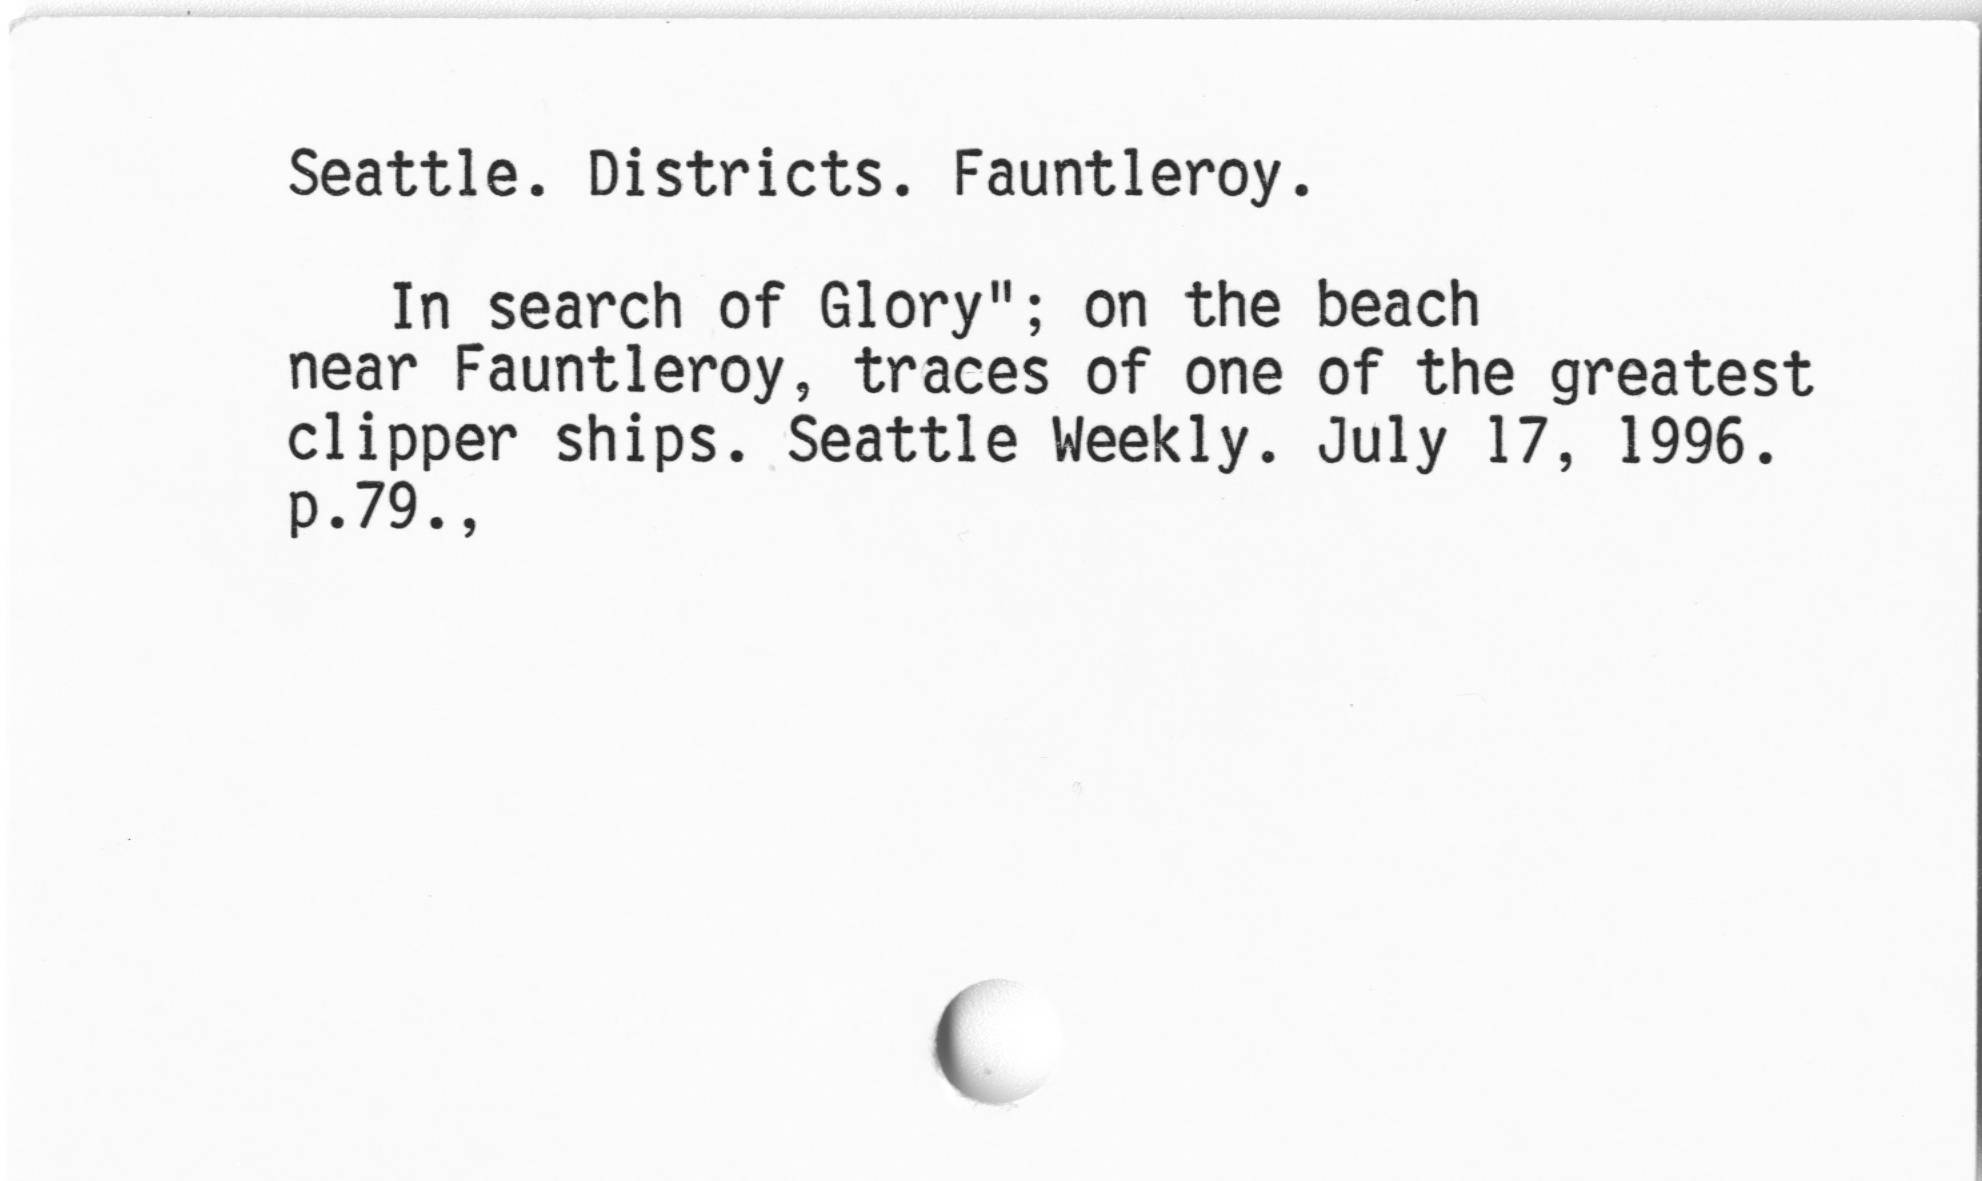 Seattle. Districts. Fauntleroy.